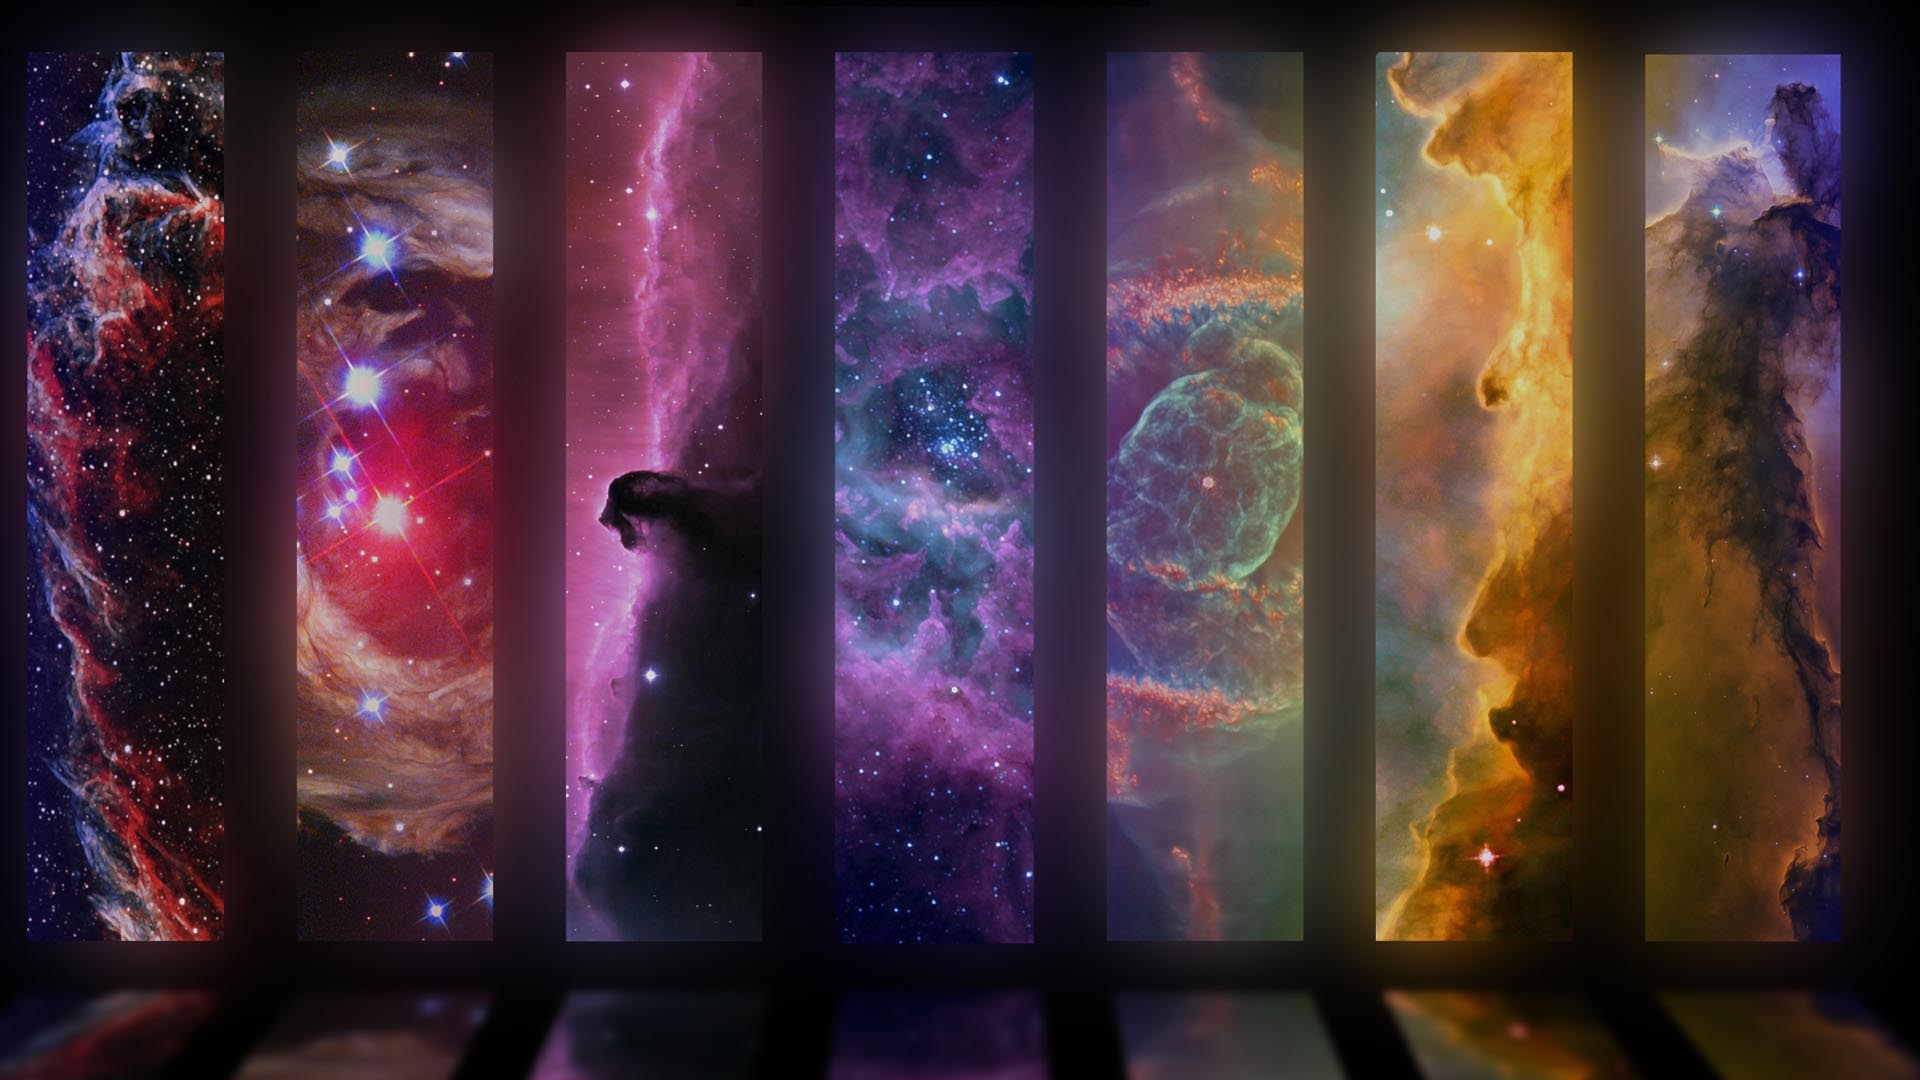 Outer Space Portraits HD Wallpaper FullHDWpp   Full HD 1920x1080